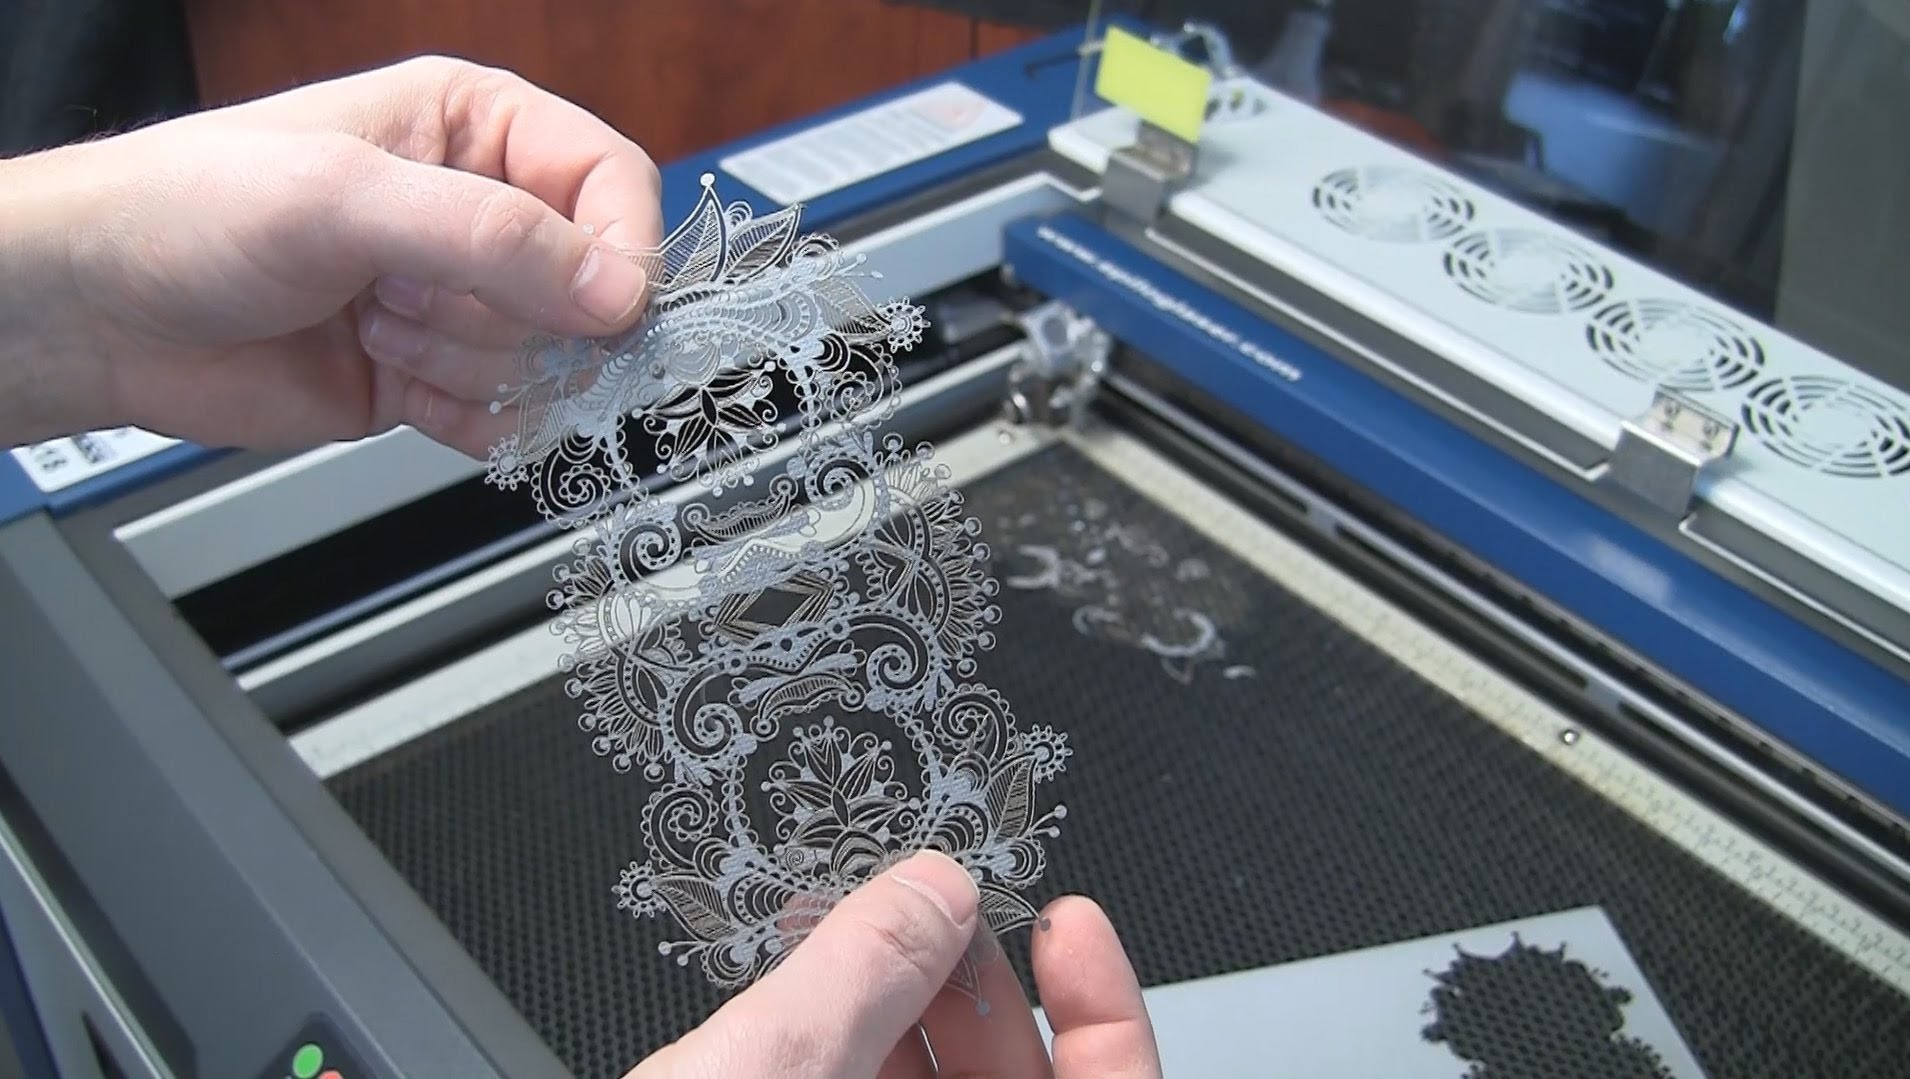 Laser Cut Paper - Intricate Lace Pattern with an Epilog Laser